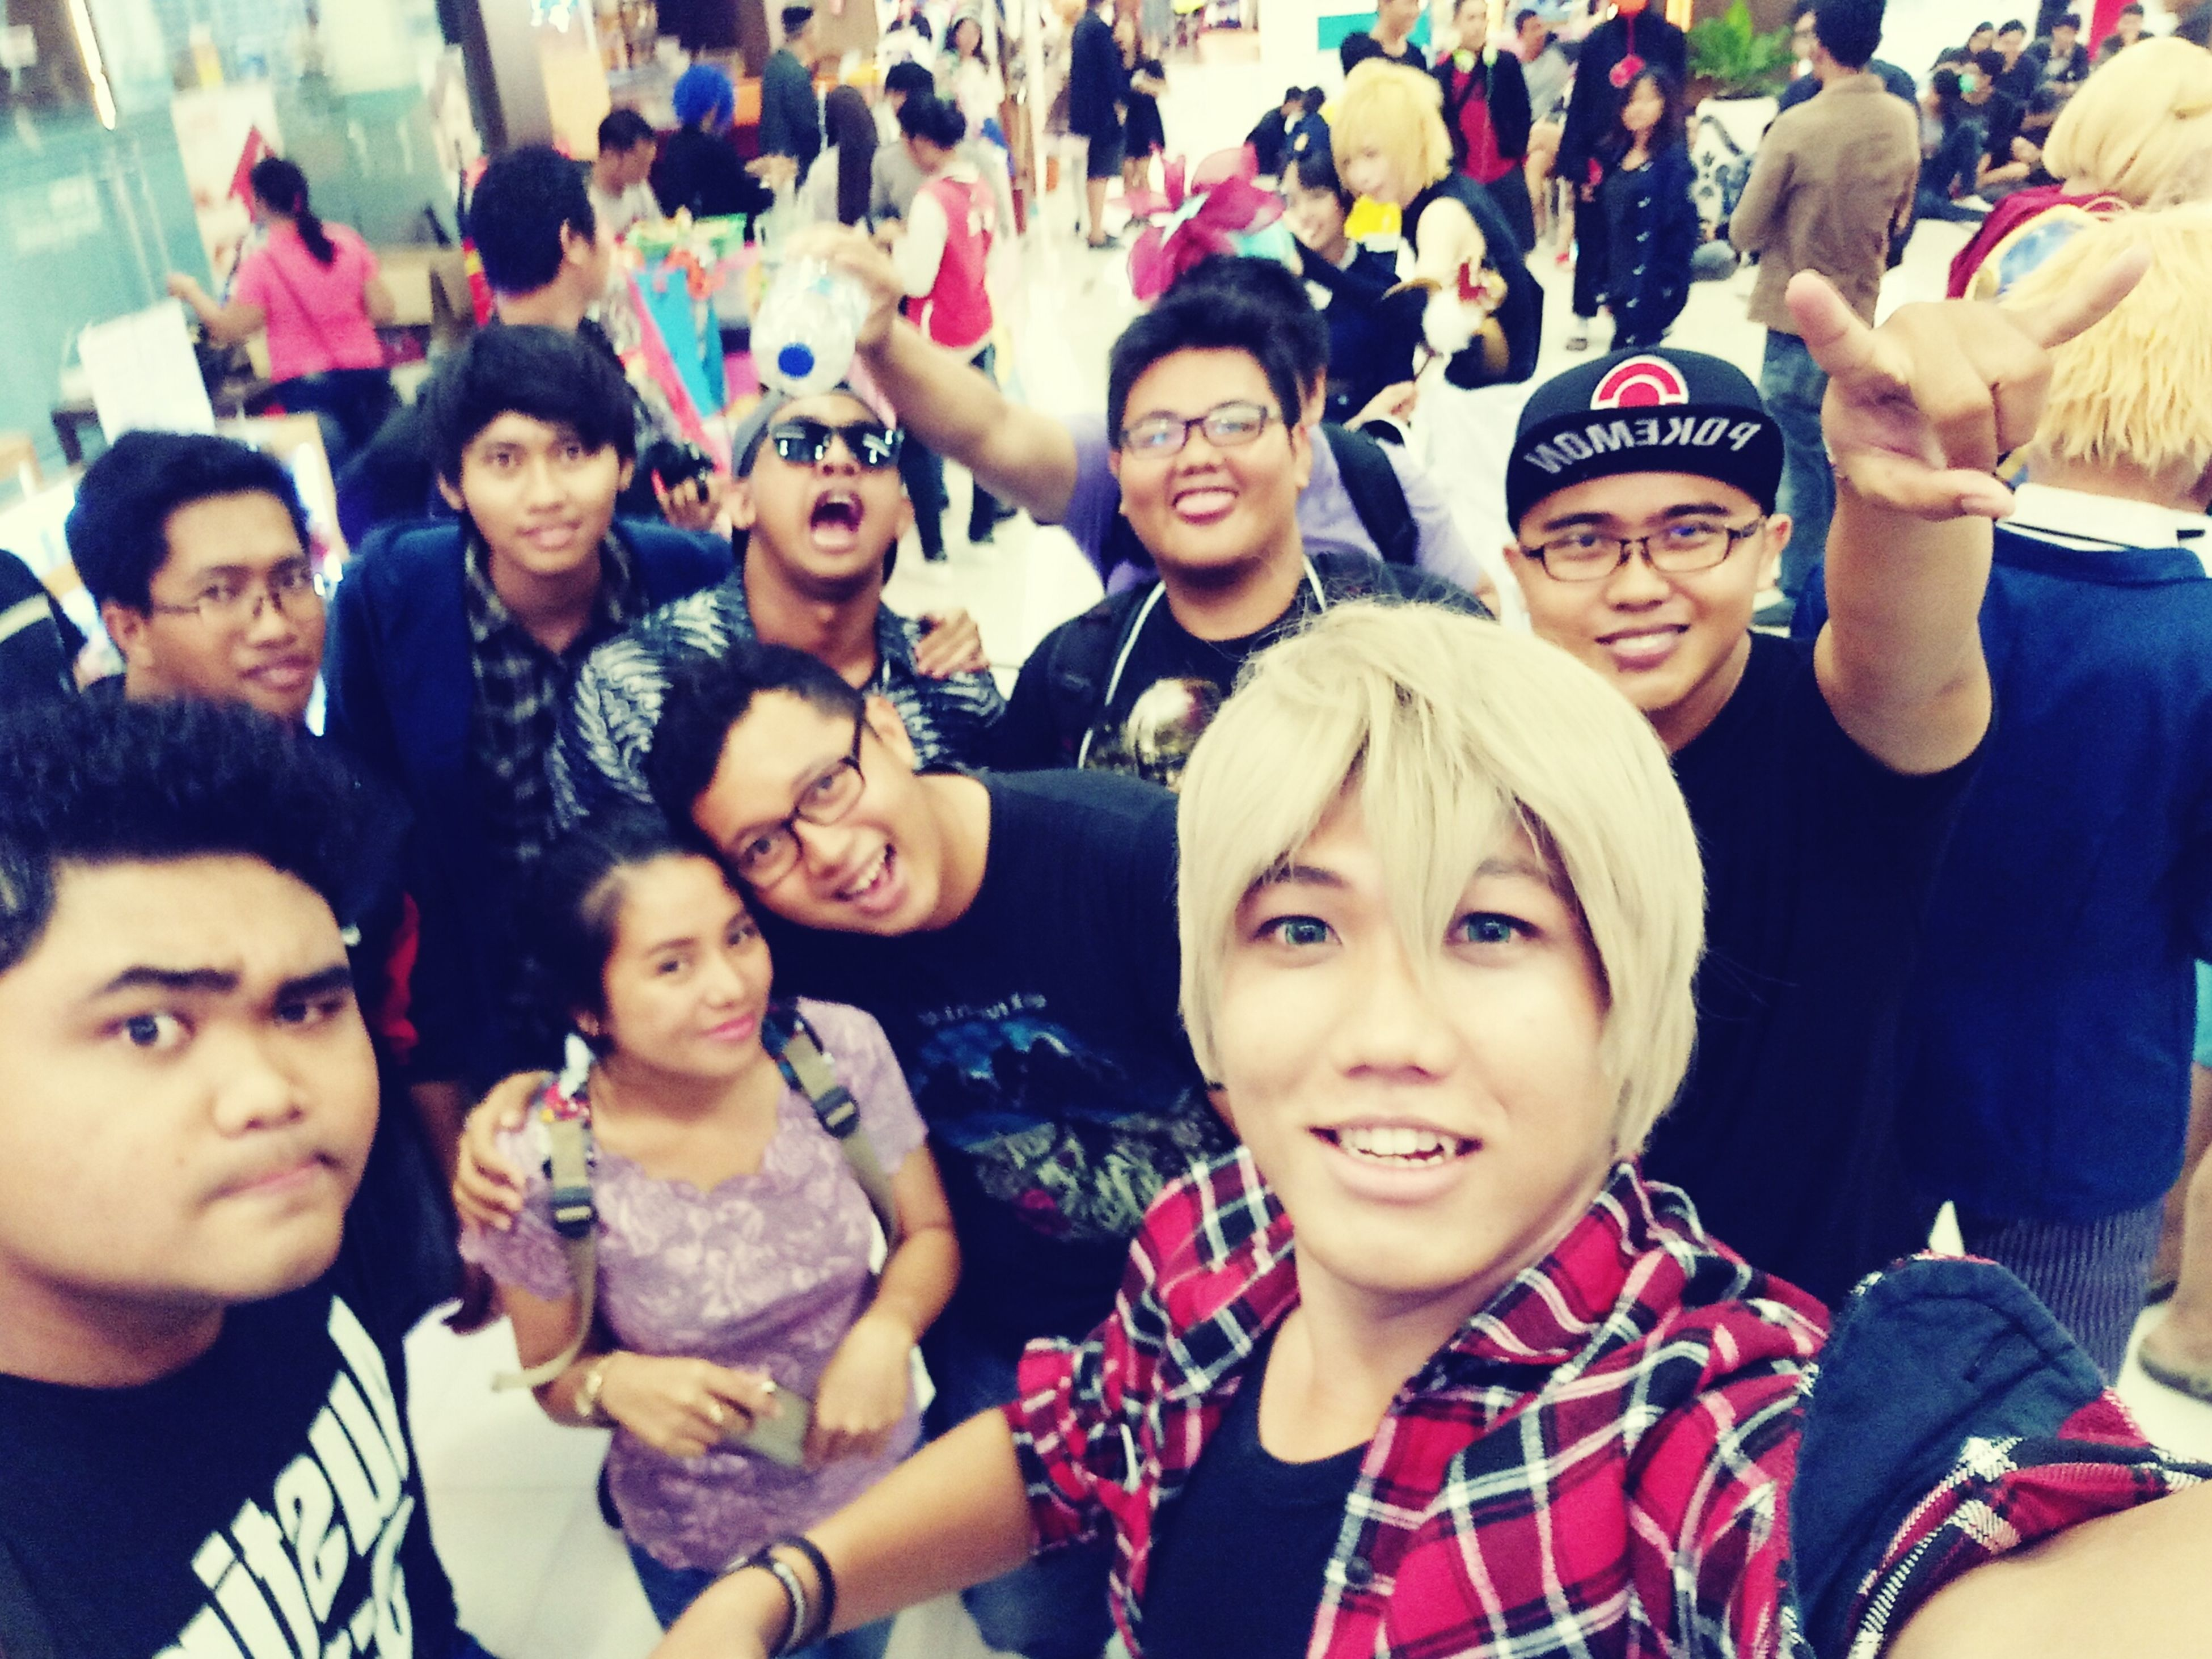 People Cosplay Photo Event Girlfriend Friends Portrait Looking At Camera Crowd